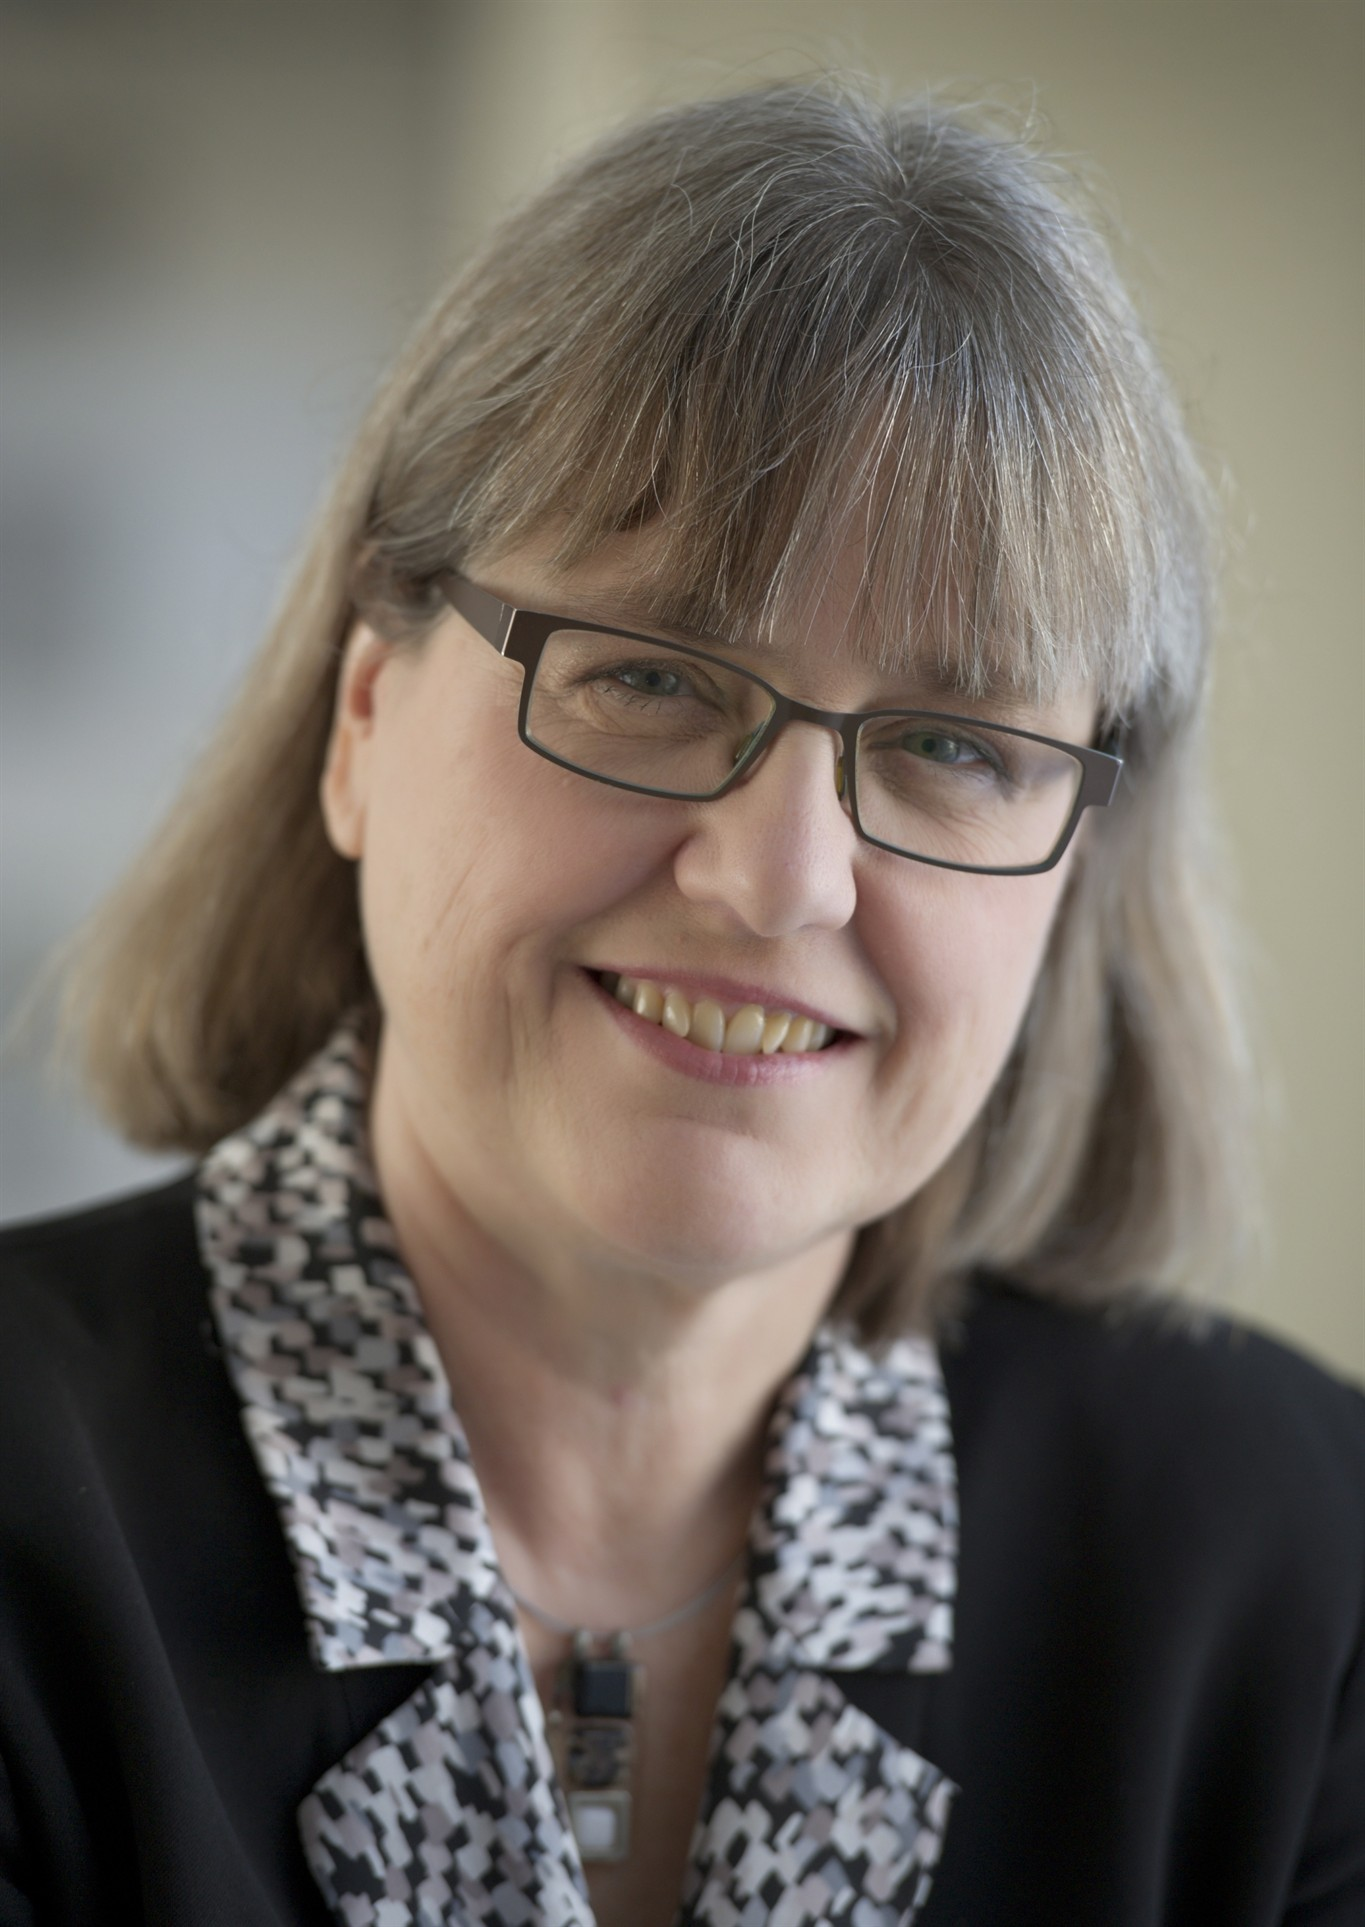 canada s donna strickland one of three scientists to win nobel prize